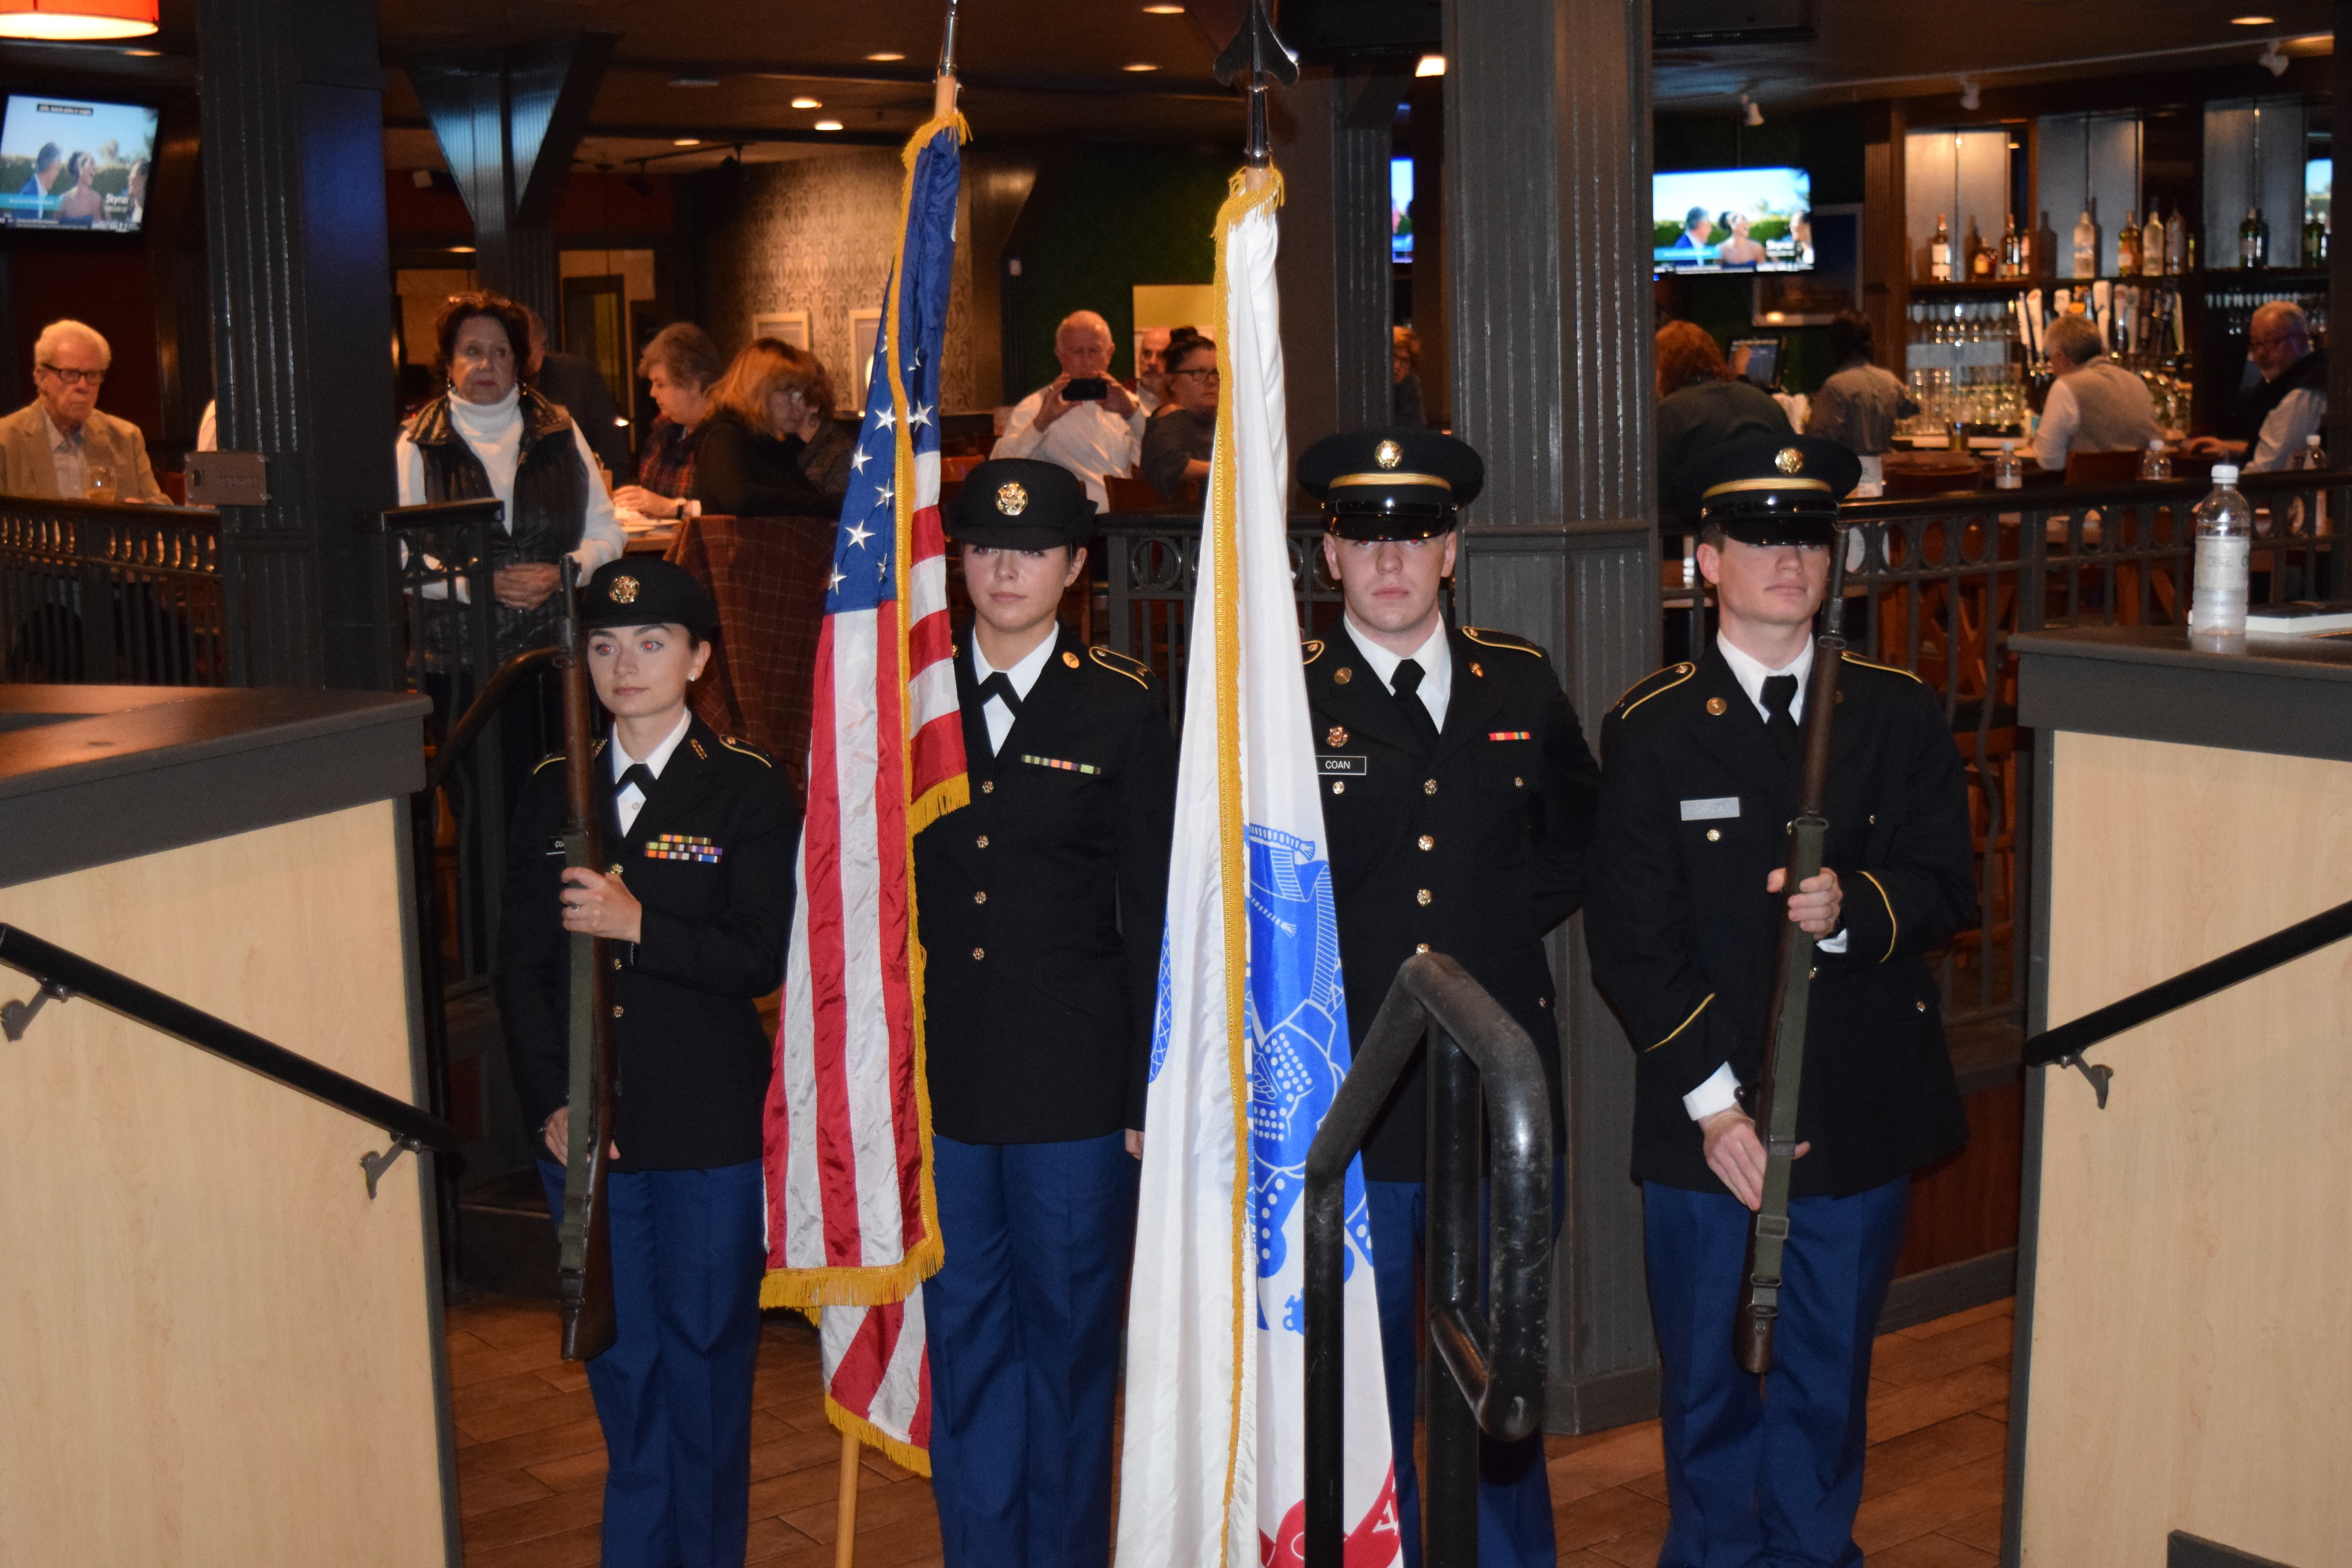 <p style='text-align:center'>Color Guard</p><span style='font-size:1rem'> Color Guard has been a part of the military since its inception. We have the honor of presenting the colors at several events each semester at a variety of events. We are generally asked to present the colors at Vanderbilt sporting events as well as corporate events off campus.</span>